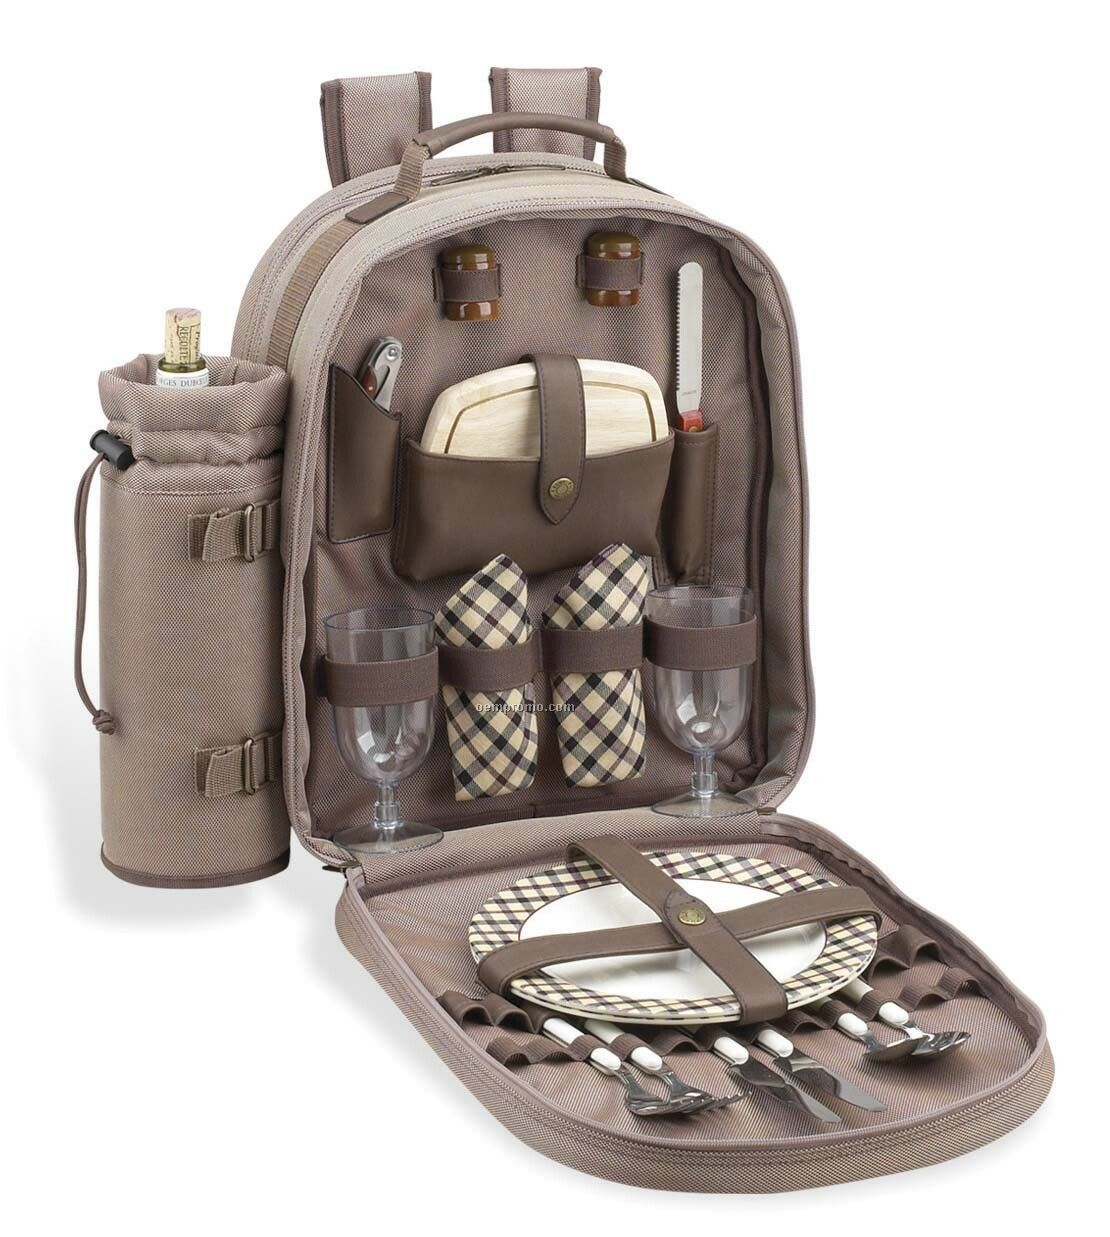 New Hudson Picnic Backpack Cooler For Two.